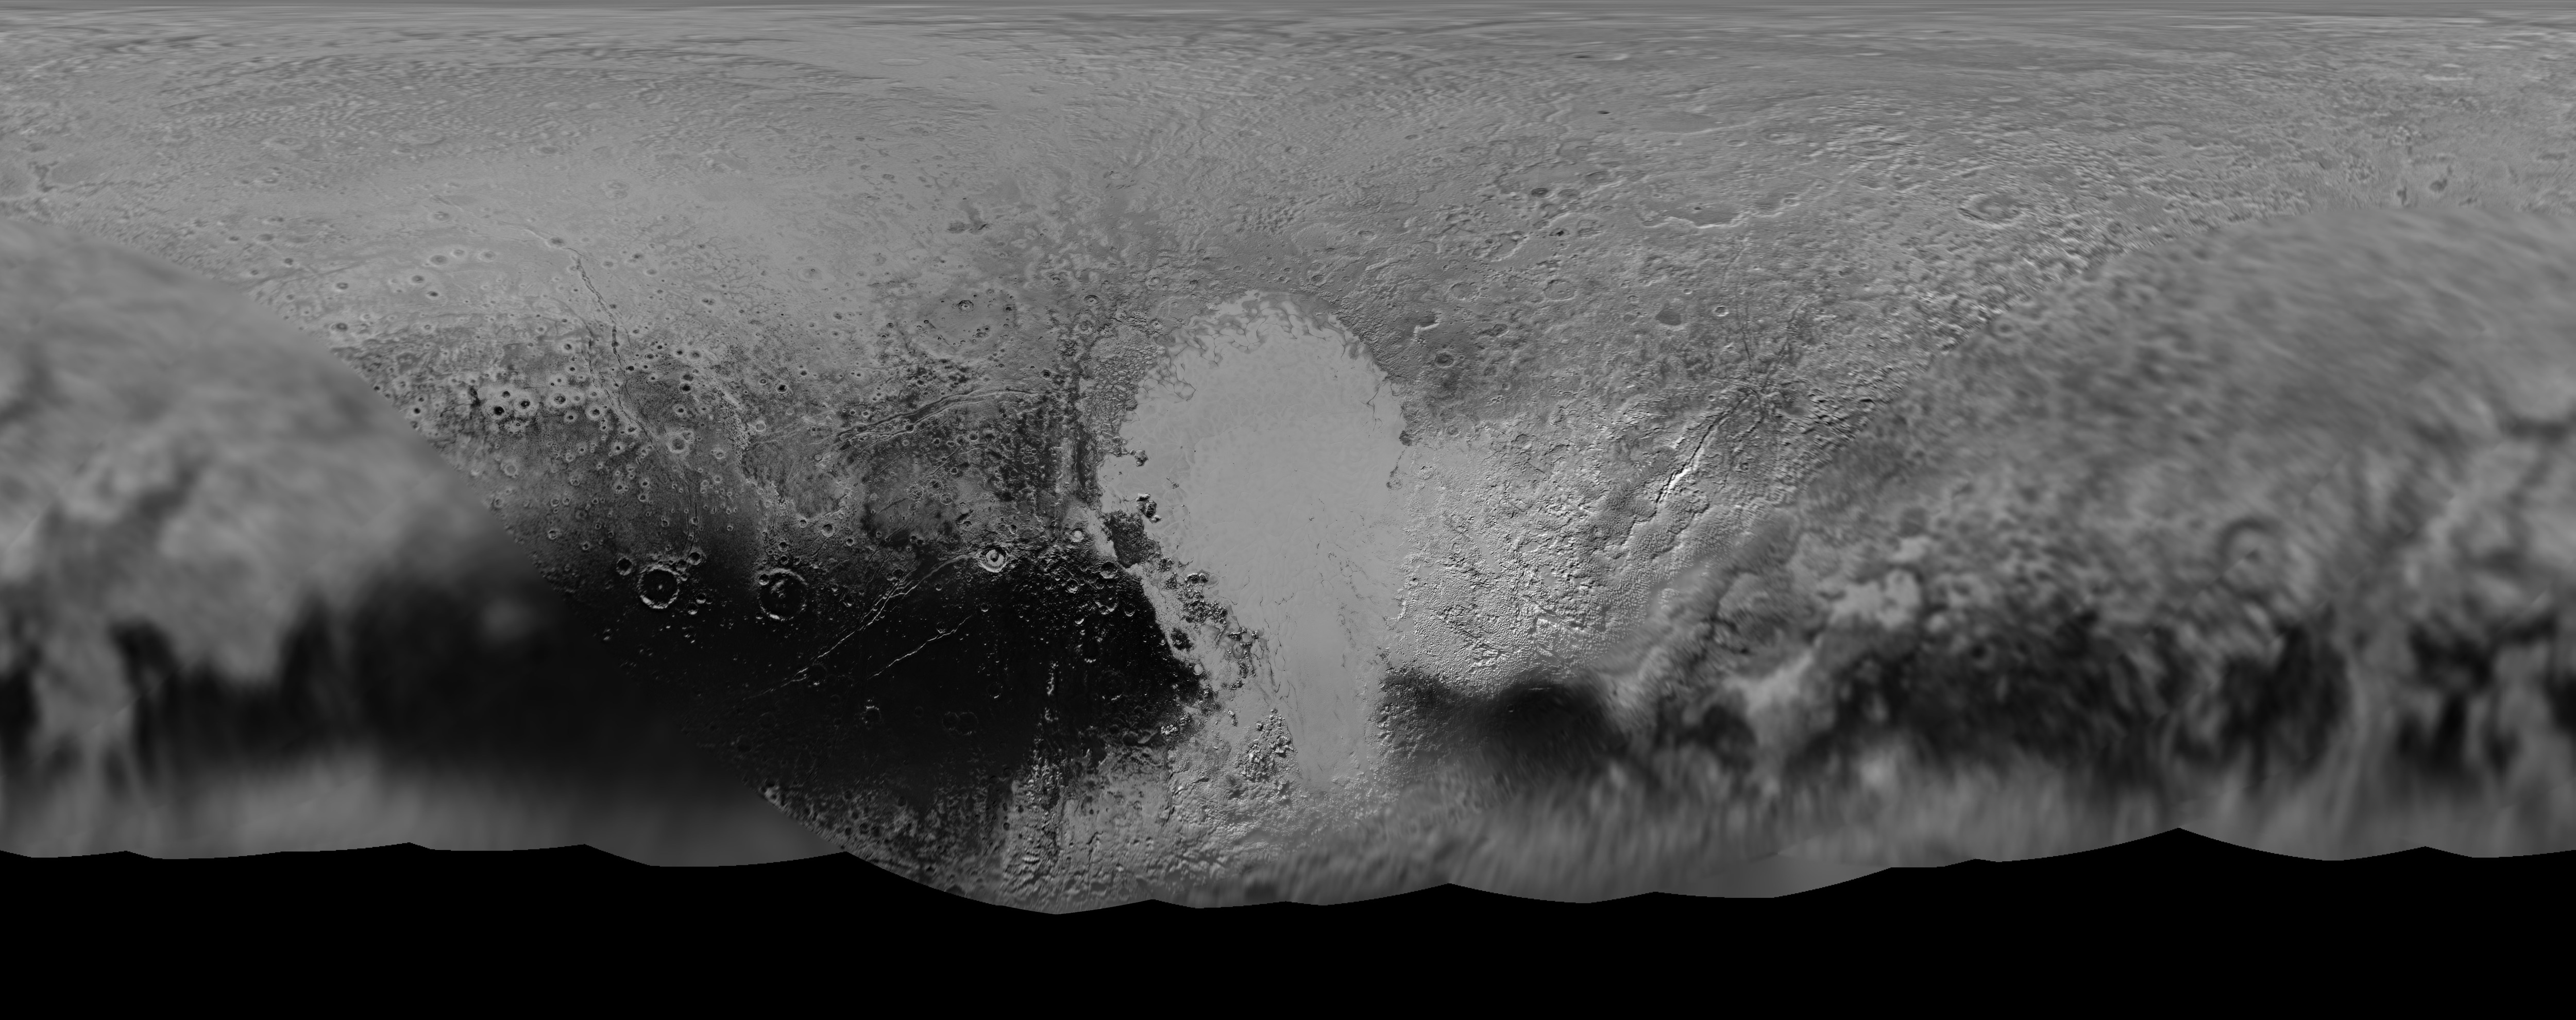 NASA's New Horizons mission science team has produced this updated panchromatic (black-and-white) global map of Pluto. The map includes all resolved images of Pluto's surface acquired at pixel resolutions ranging from 18 miles (30 kilometers) on the Charon-facing hemisphere (left and right edges of the map) to 770 feet (235 meters) on the hemisphere facing New Horizons during the closest approach on July 14, 2015 (map center).  Credits: NASA/JHUAPL/SWRI